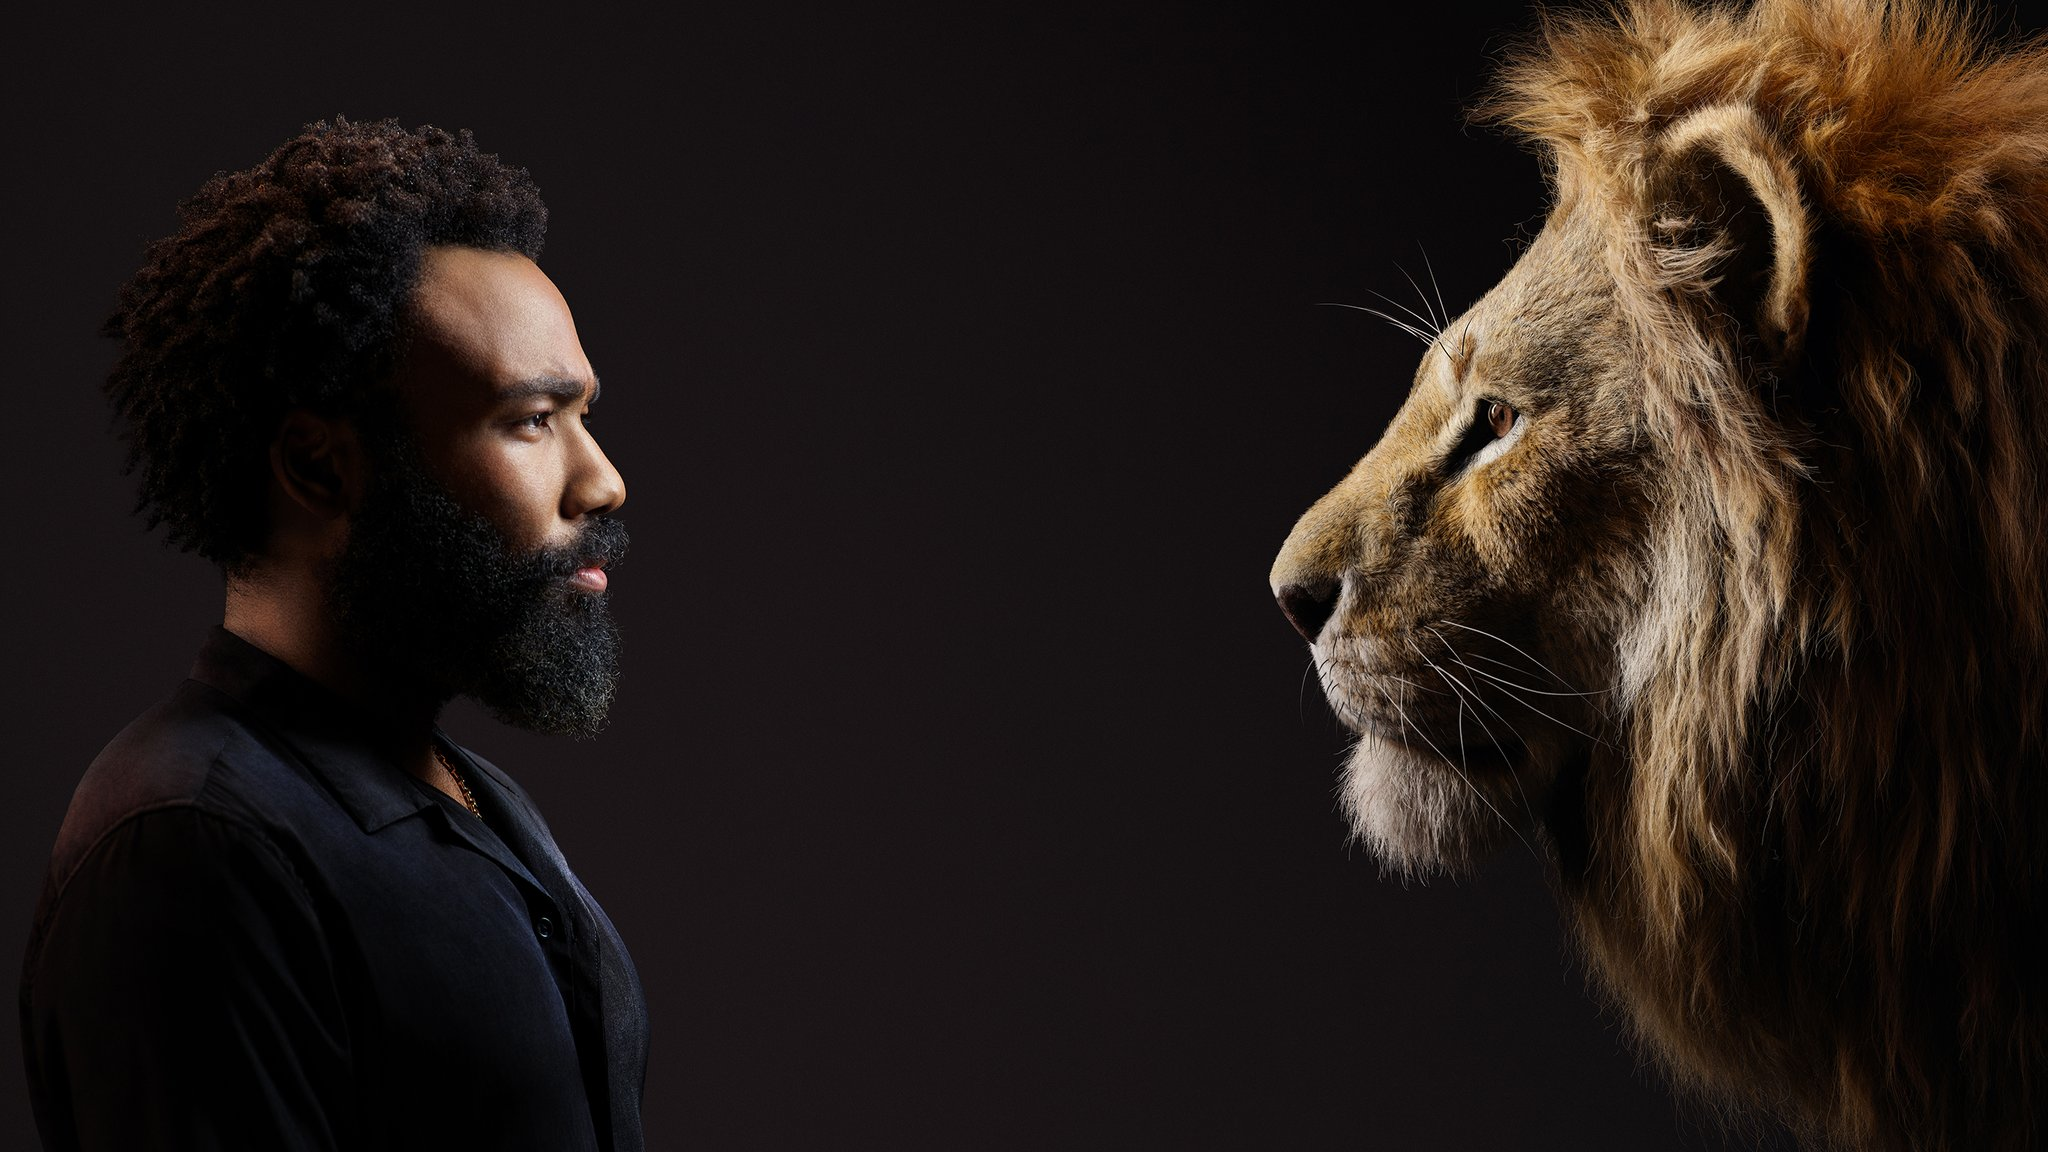 The Lion King Pride 01 - Donald Glover Simba